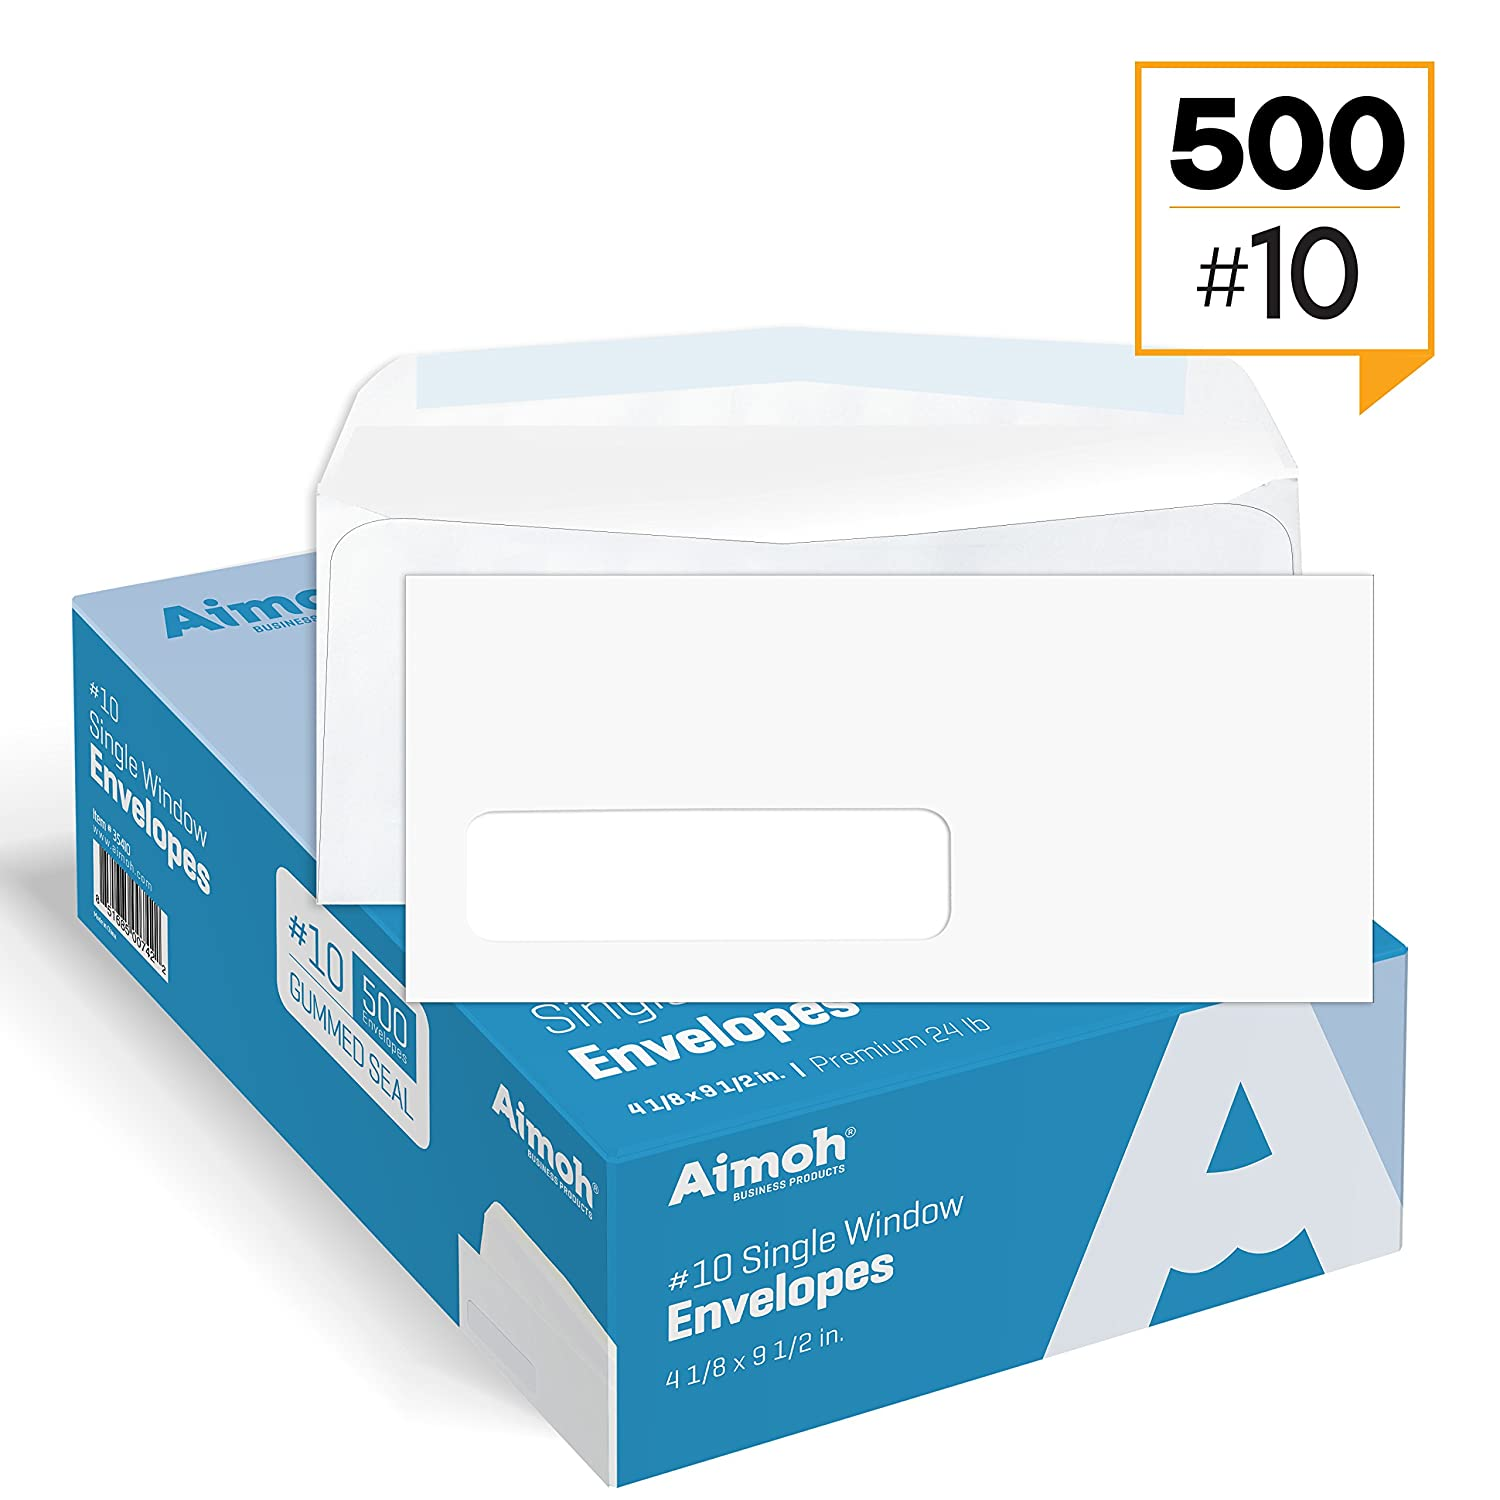 #10 Single Left Window Security Tinted Envelopes, Gummed Closure, Size 4-1/8 X 9-1/2 inches, 24 LB - 500 Count (35310) Aimoh